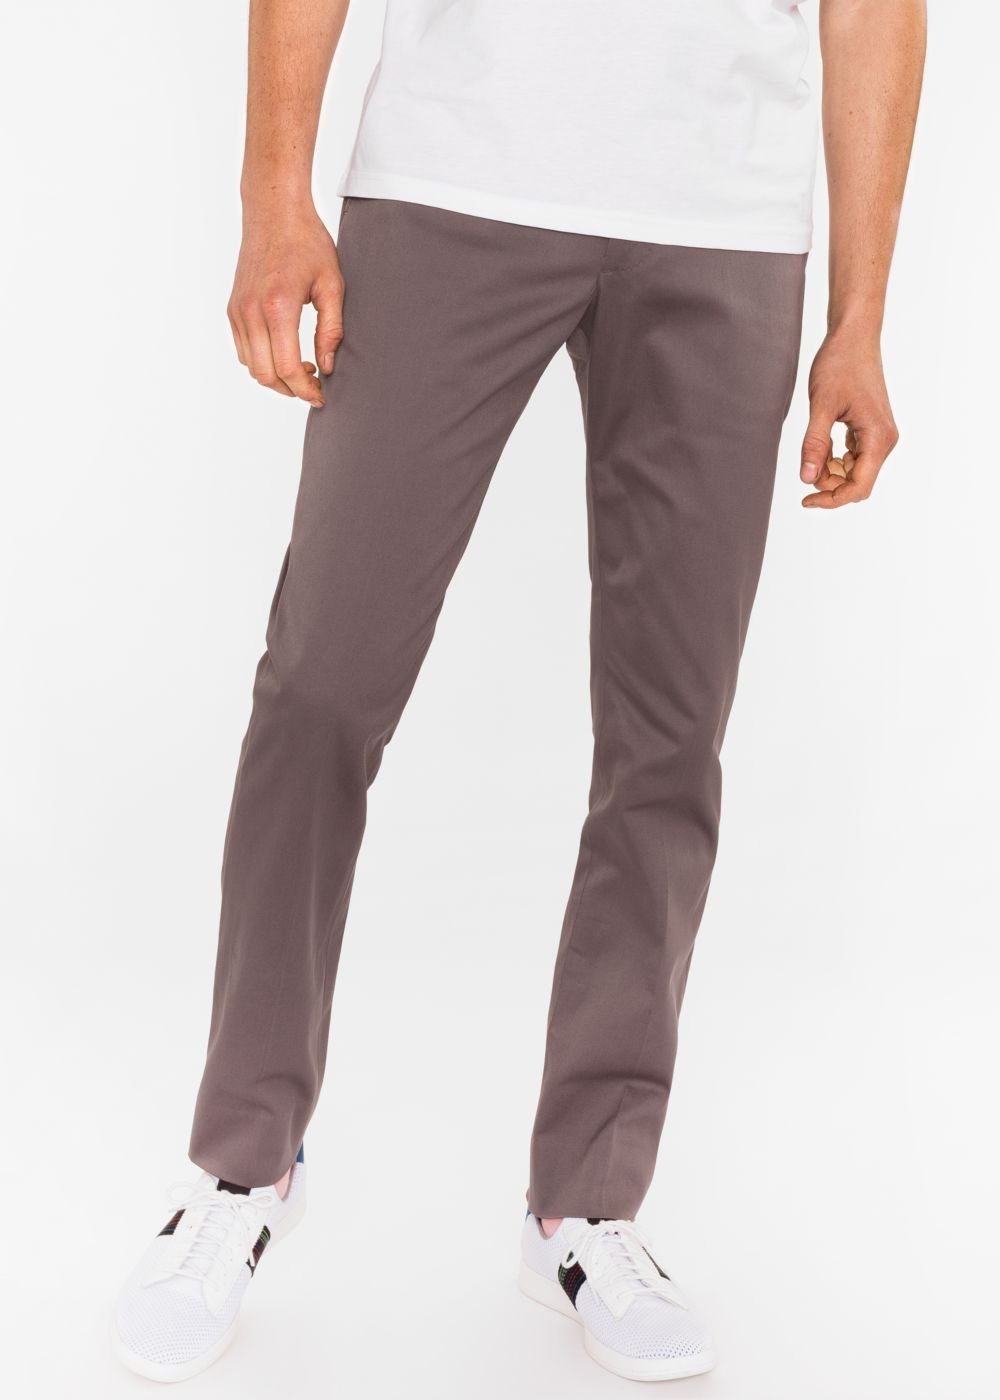 Paul Smith Men's Slim-Fit Grey Cotton-Twill Stretch Chinos